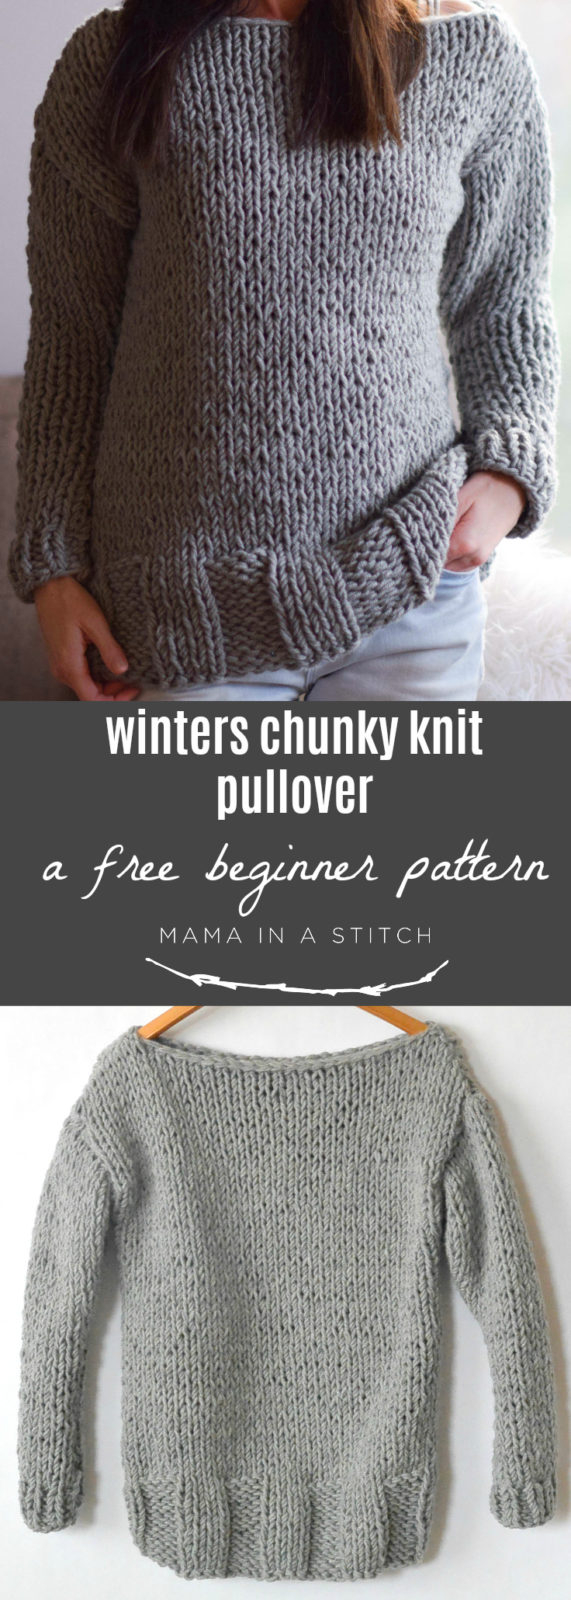 Free Knitted Cardigan Patterns Winters Chunky Easy Knit Pullover Pattern Mama In A Stitch